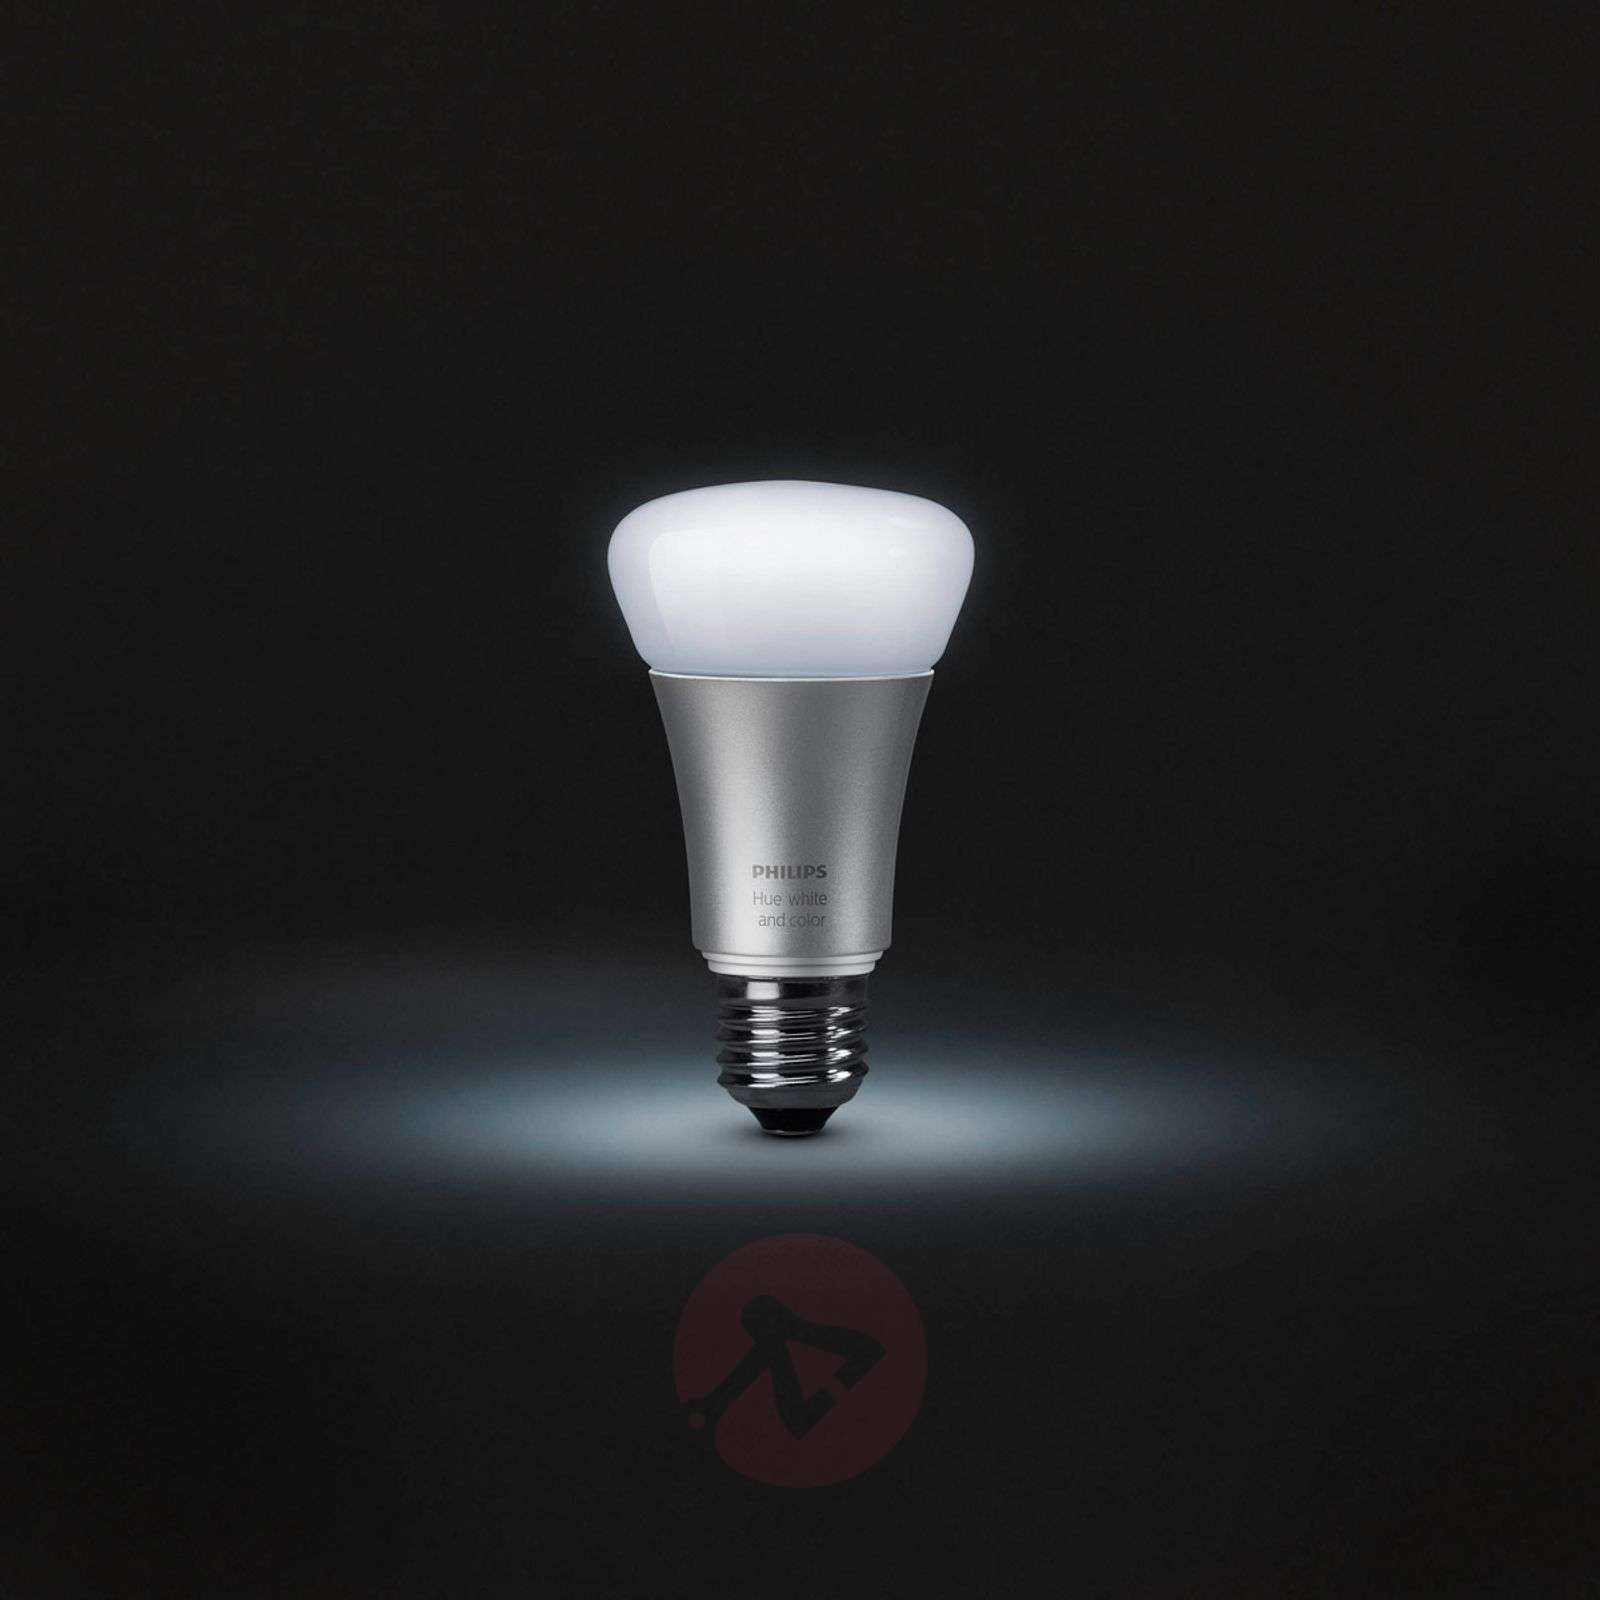 Philips Hue Lamp.Philips Hue E27 Bulb White Color Ambiance 10 W